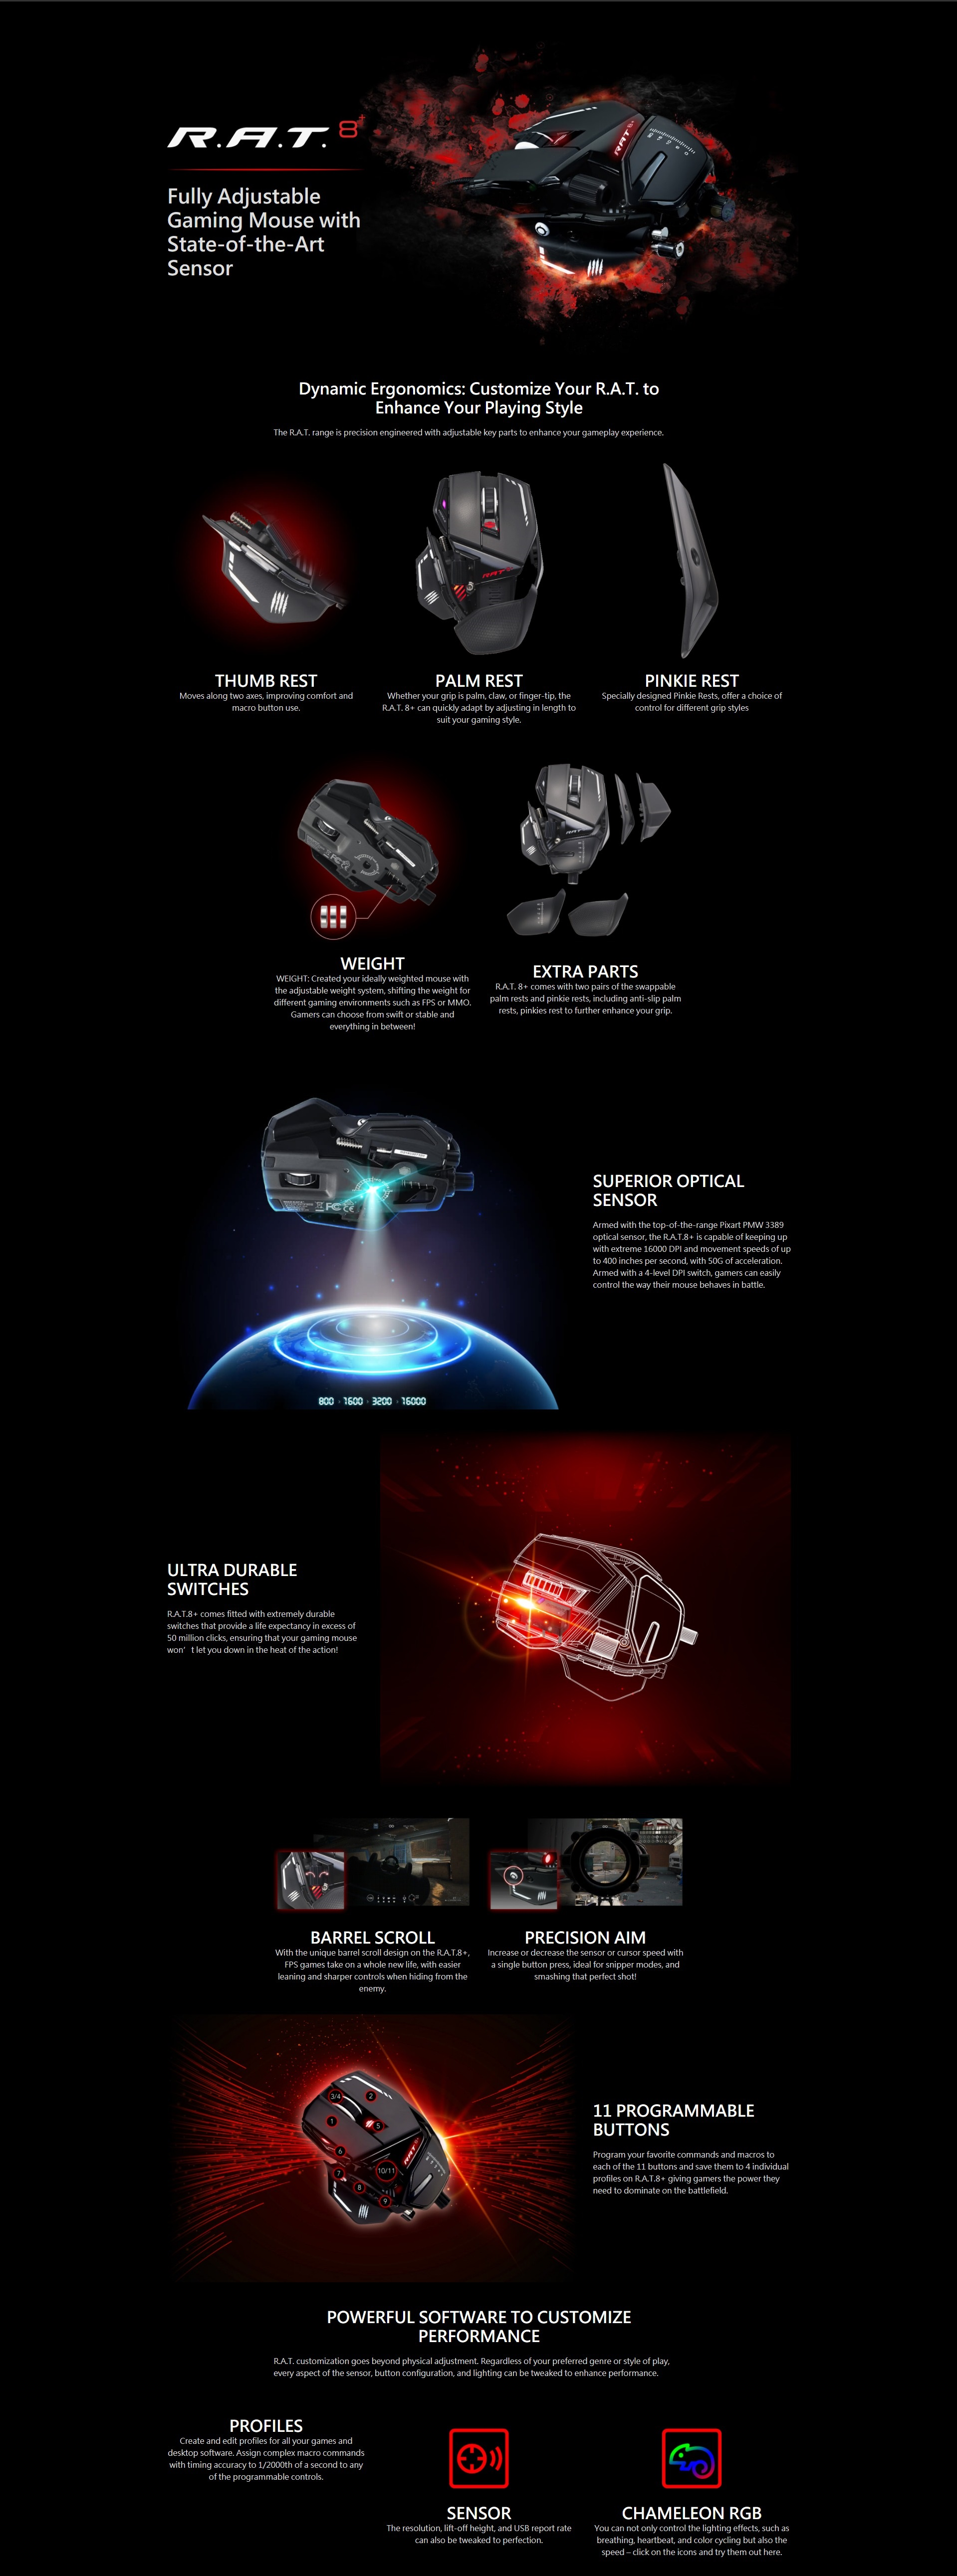 A large marketing image providing additional information about the product Mad Catz R.A.T. 8+ Gaming Mouse Black - Additional alt info not provided